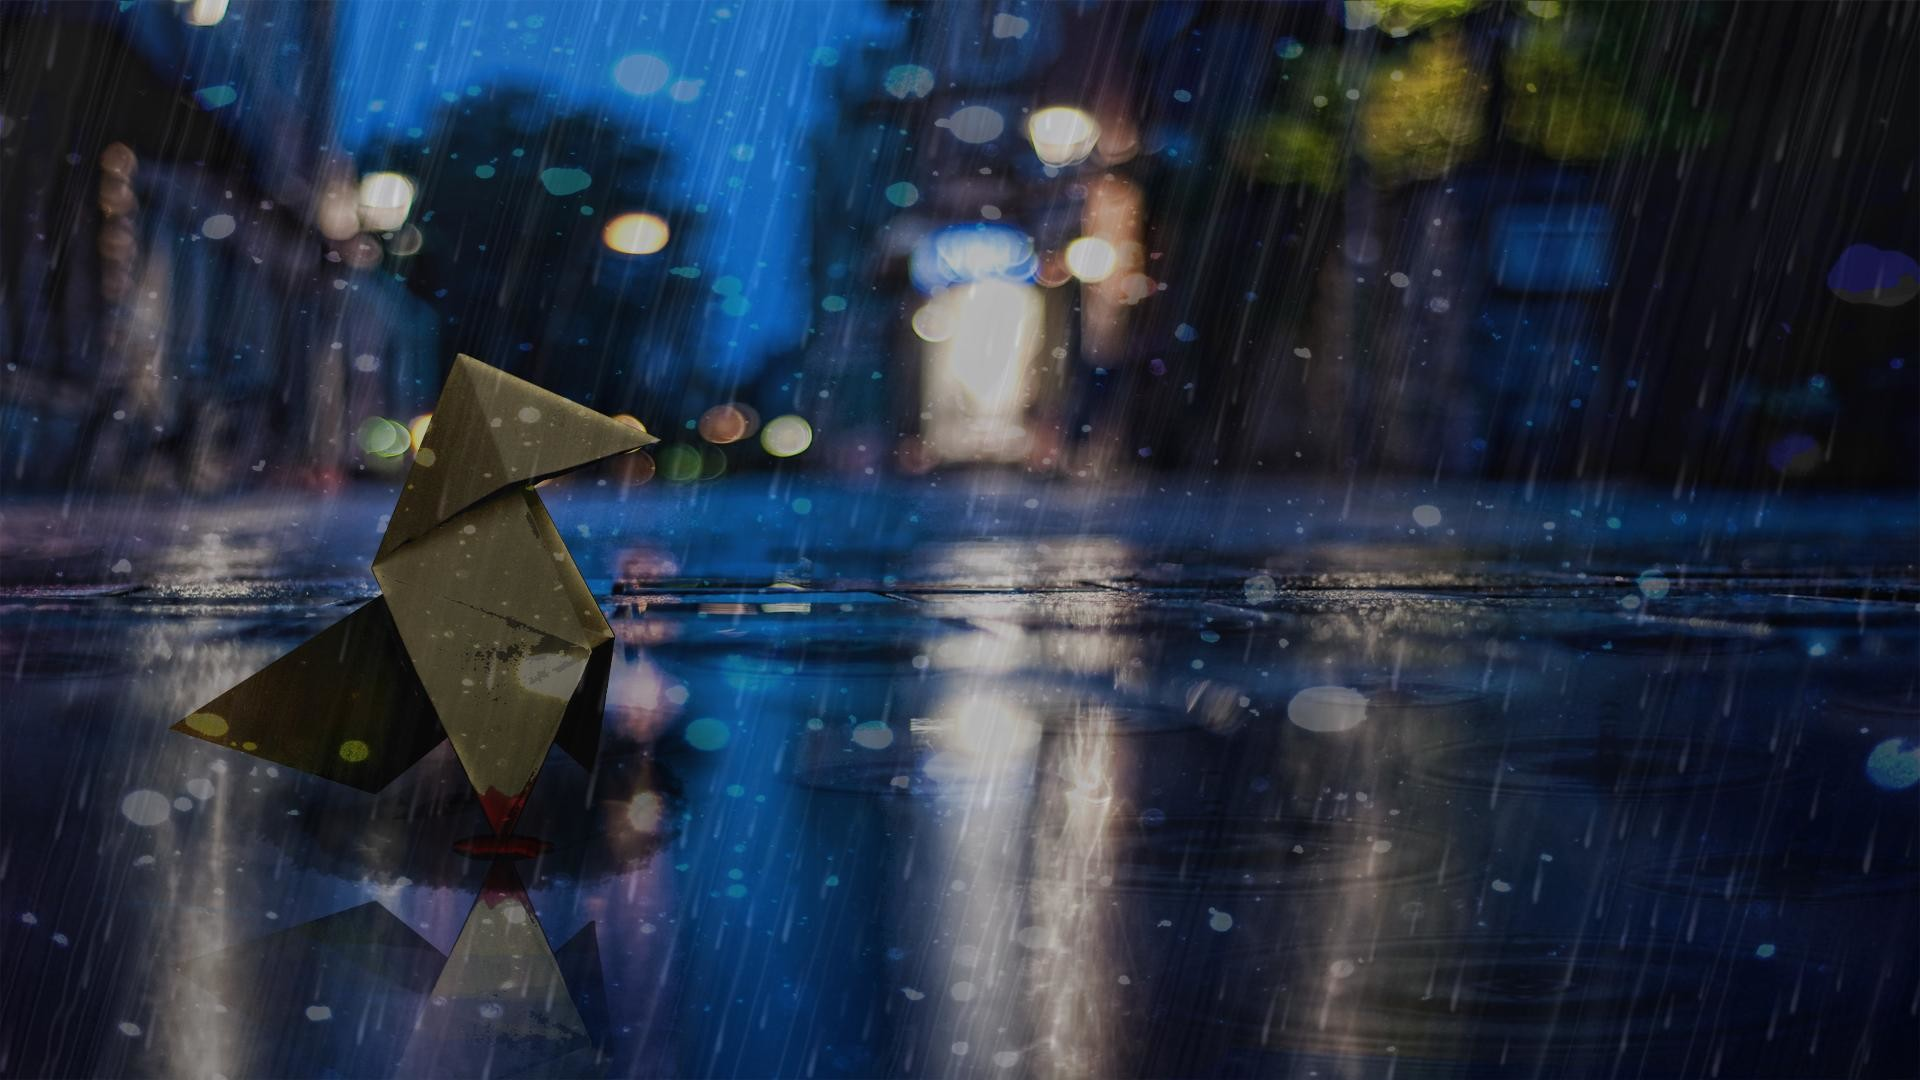 Rainy Wallpapers 1080p 74 images